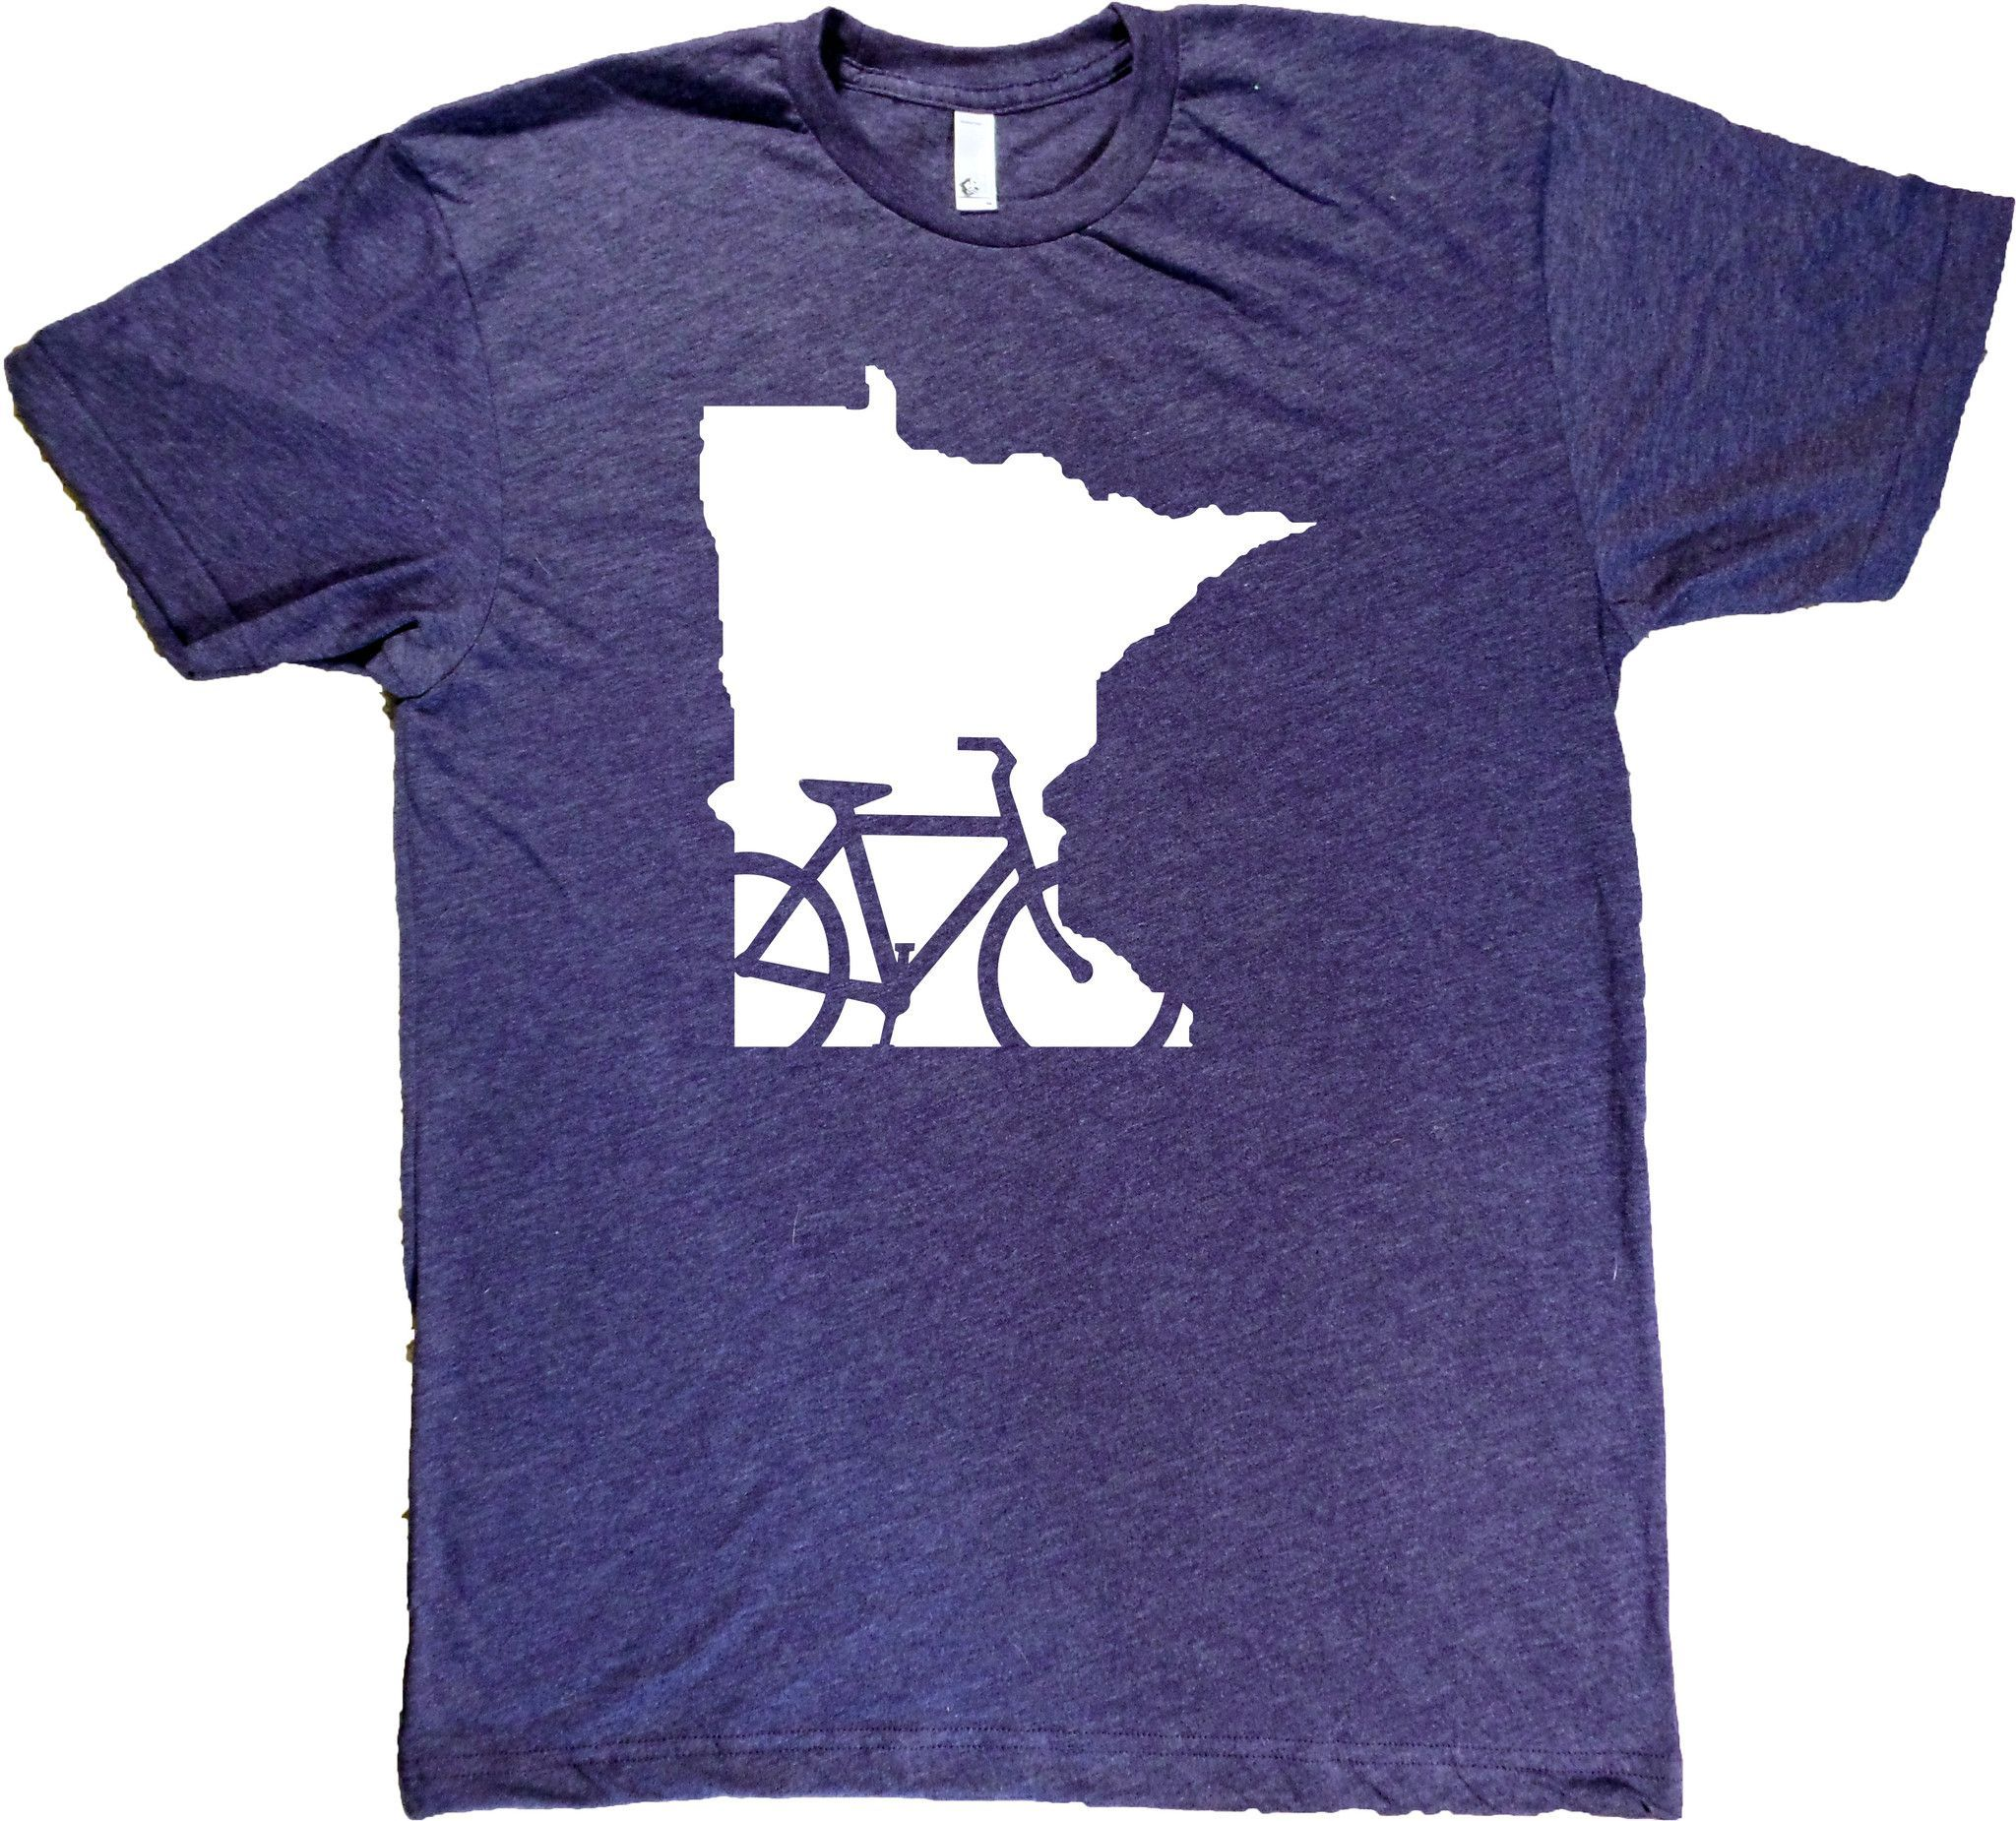 ec0169623 Screenprinted on American Apparel shirts. Designed and printed in Minnesota.  Unisex sizes S-XXL. Click here for sizing chart. 50/50 ultra-soft  cotton/poly ...